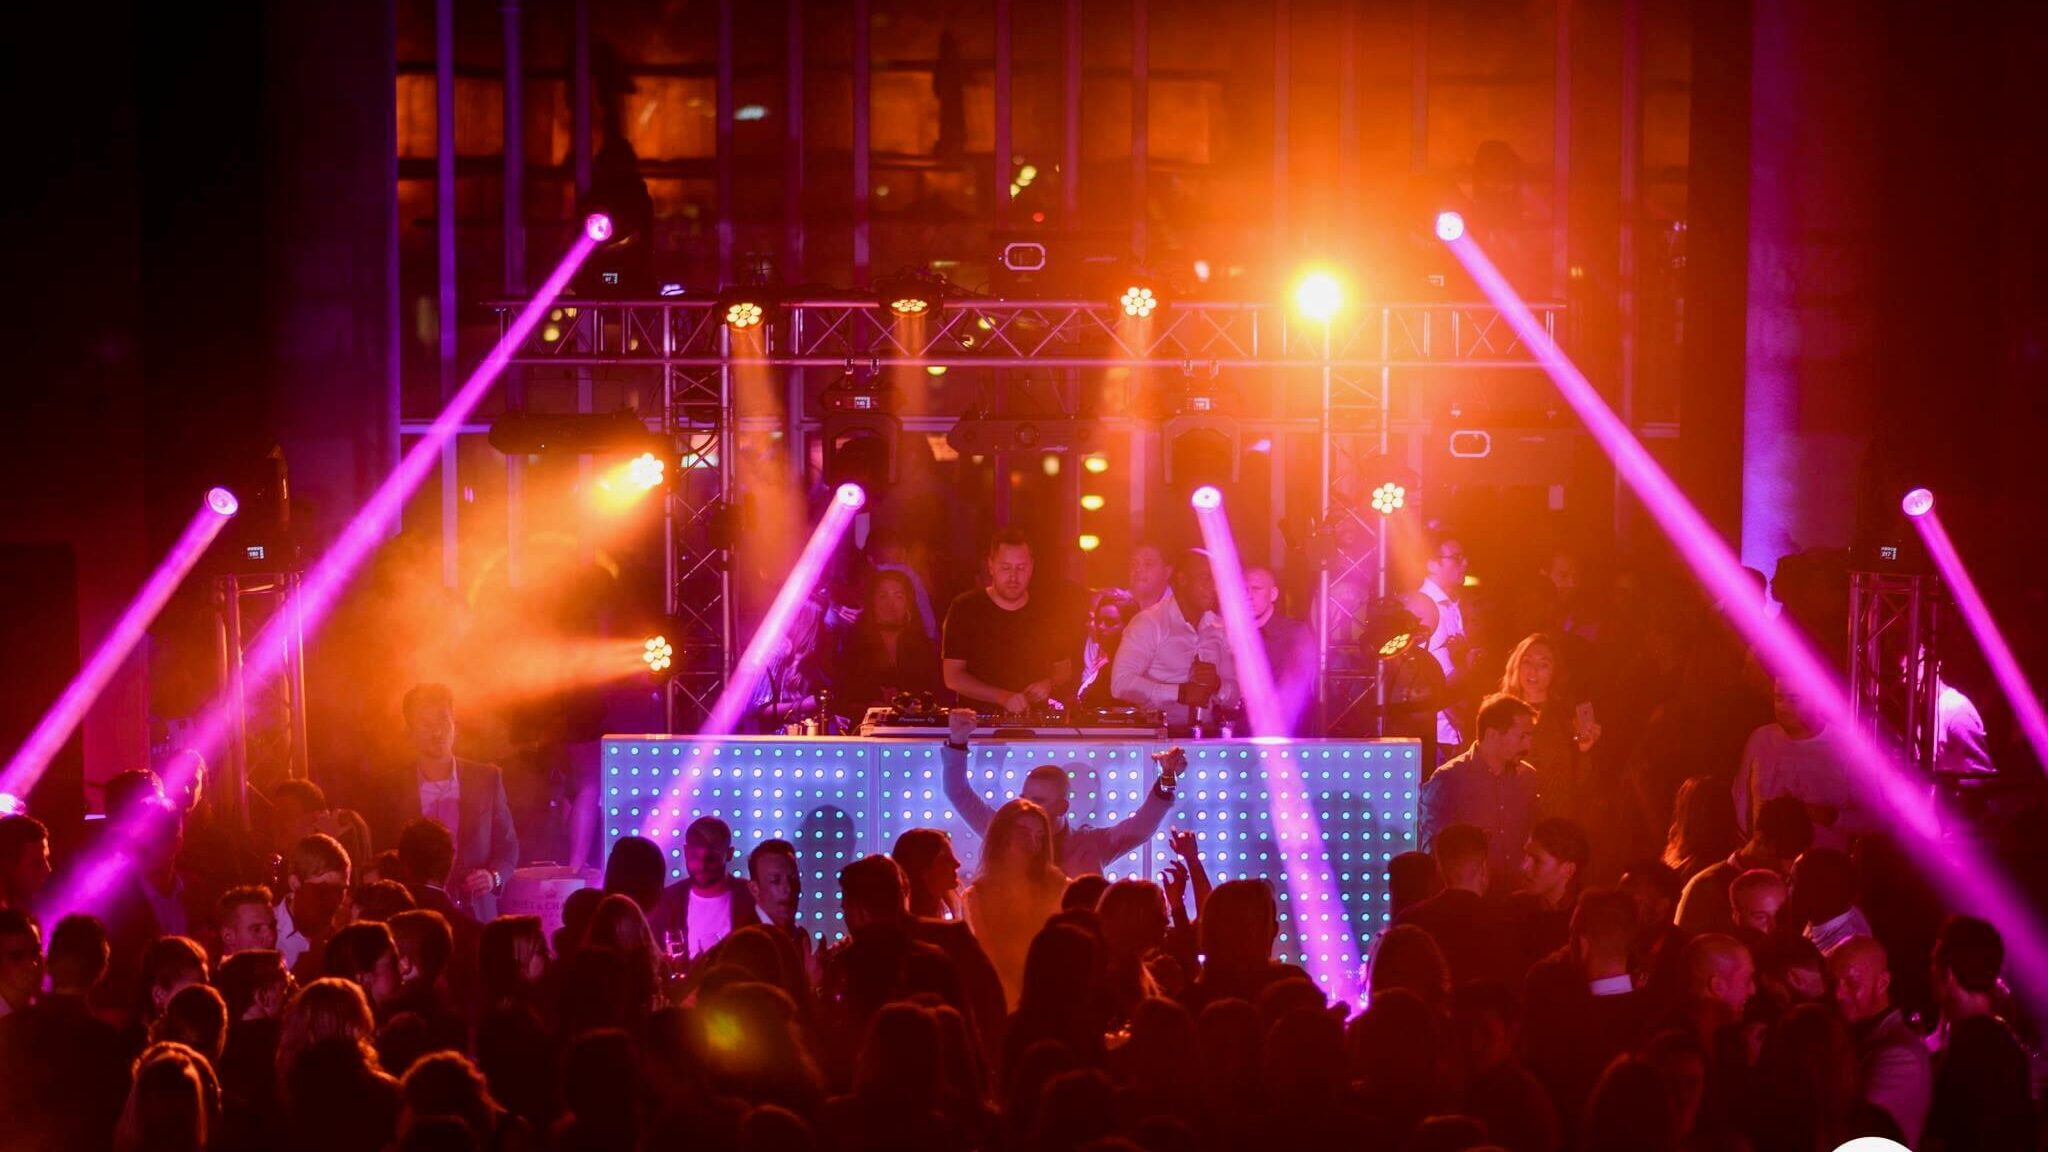 Lichtshow & RGB LED Dj Booth | Grand Cafe Staal Rotterdam